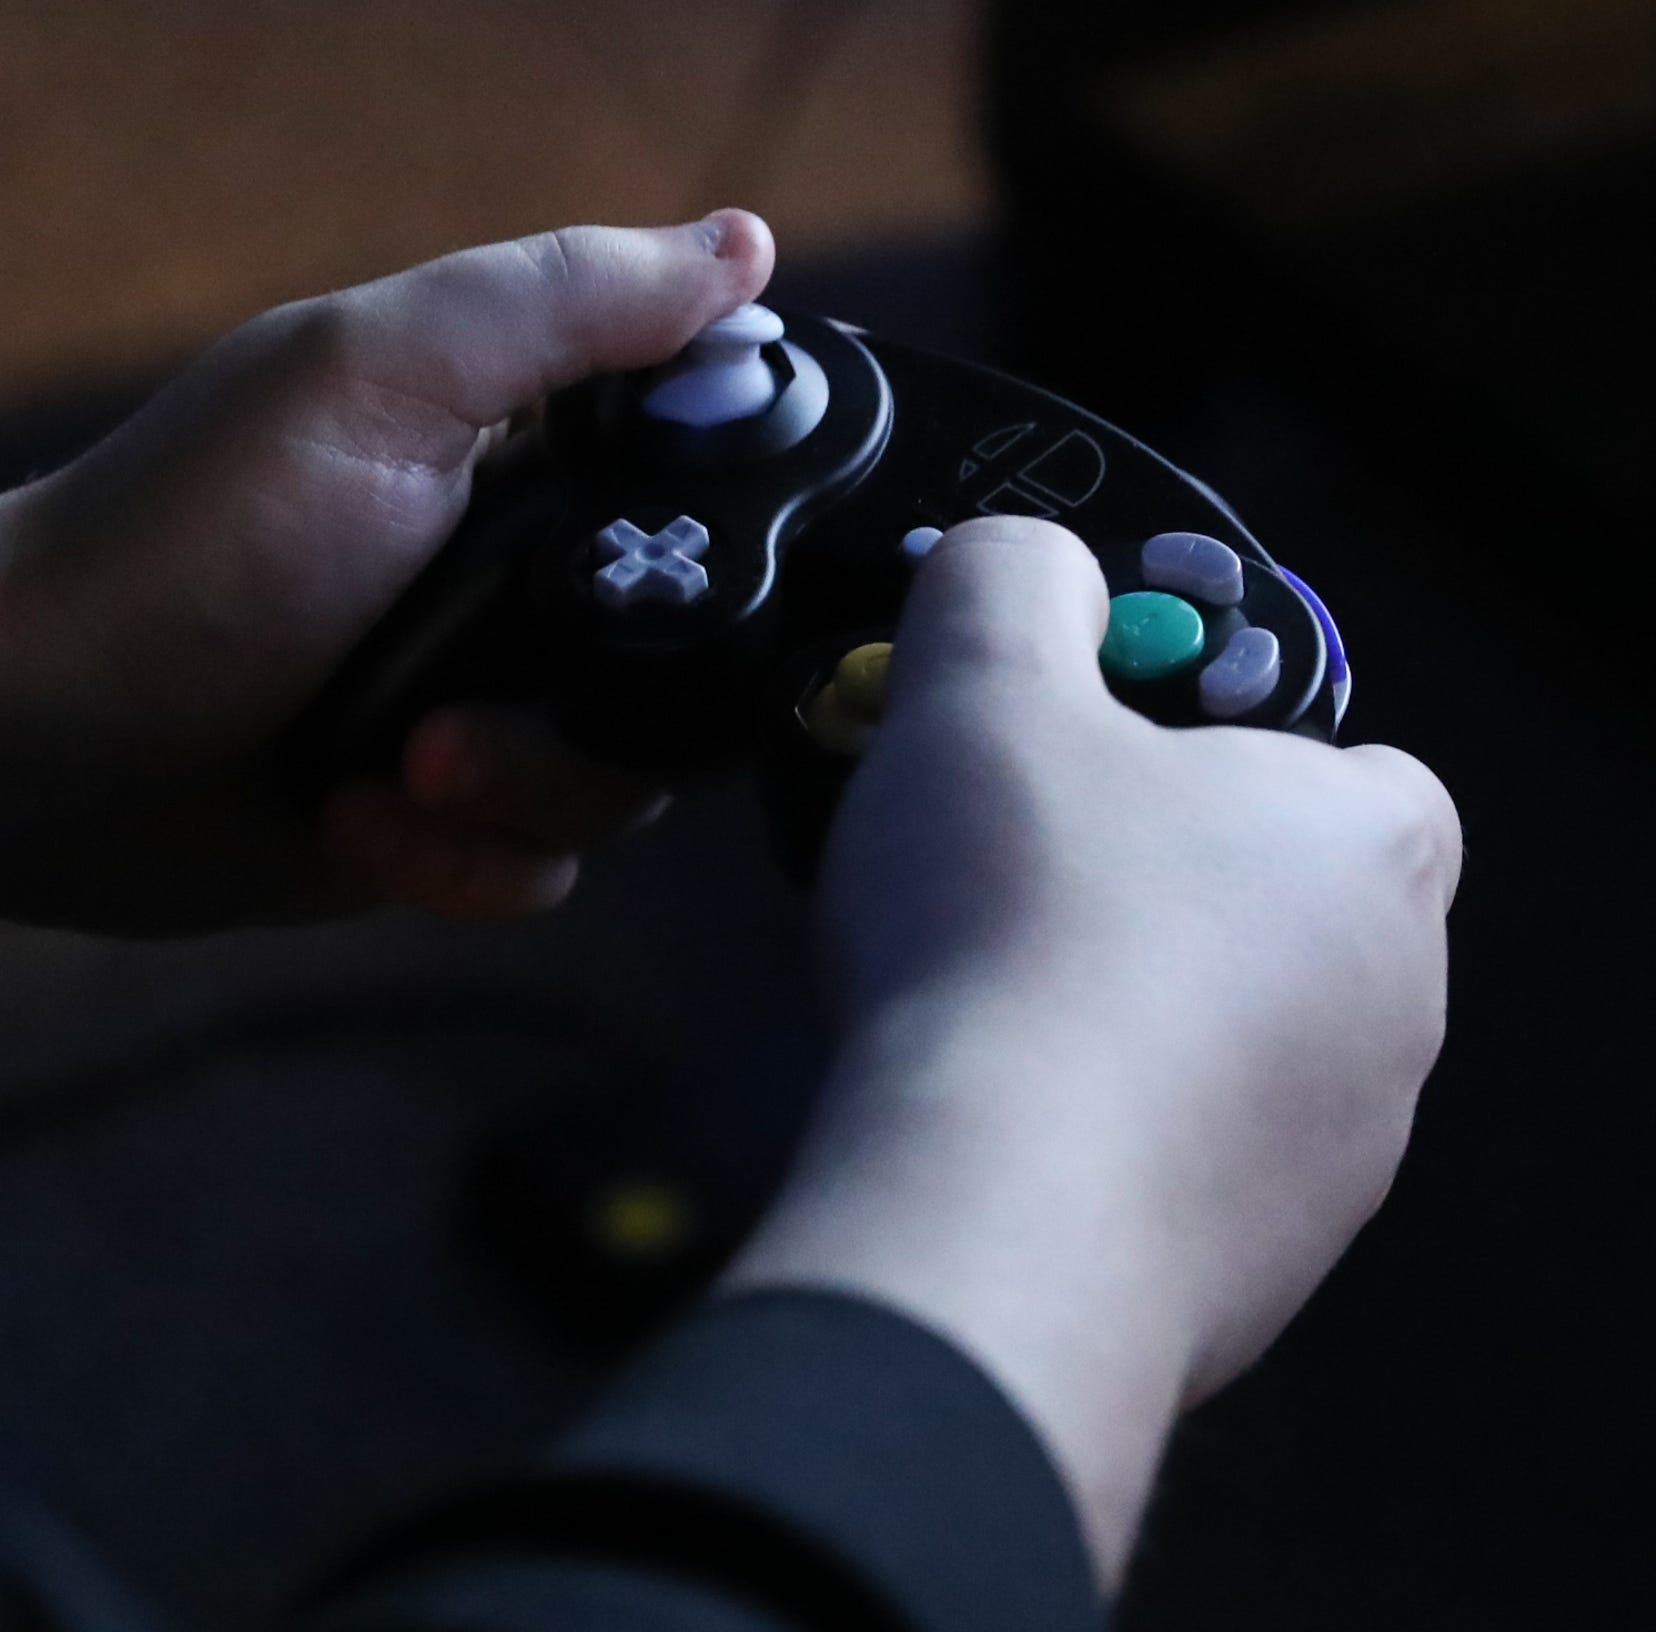 What parents need to be watching for when gamers refuse to look away from the screens